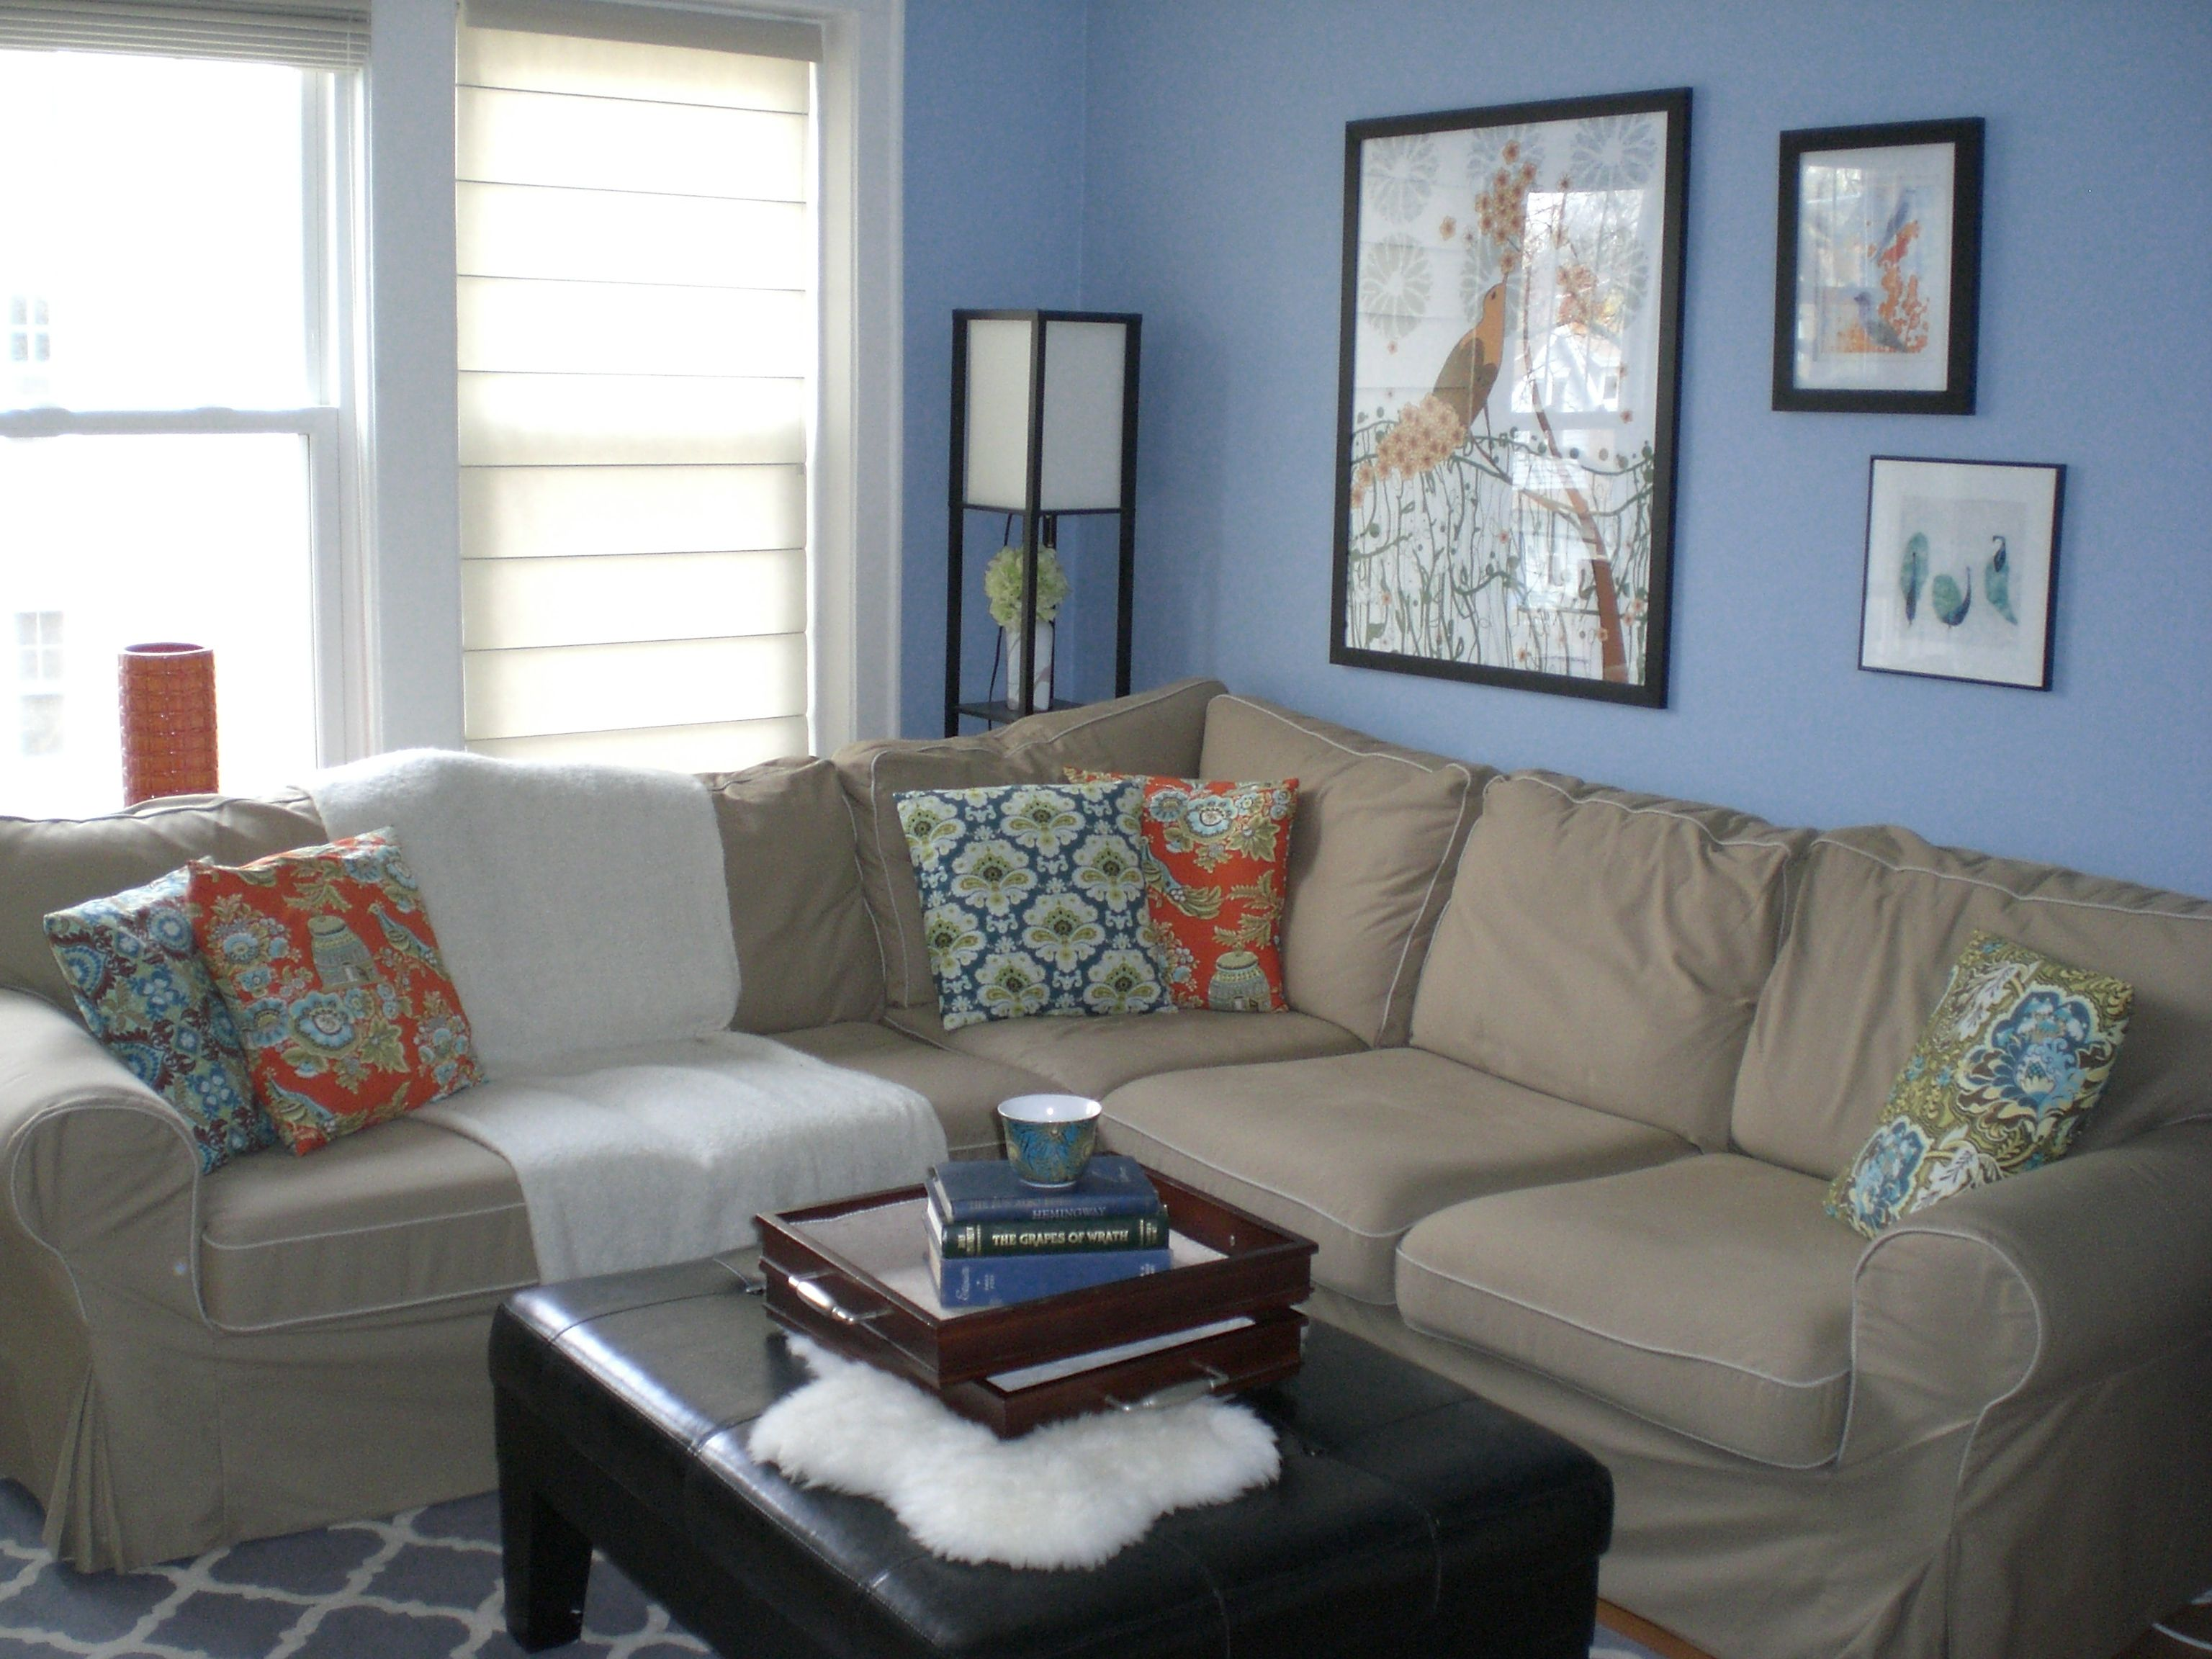 Light blue paint colors for living room xrkotdh living Paint colors for living room walls ideas